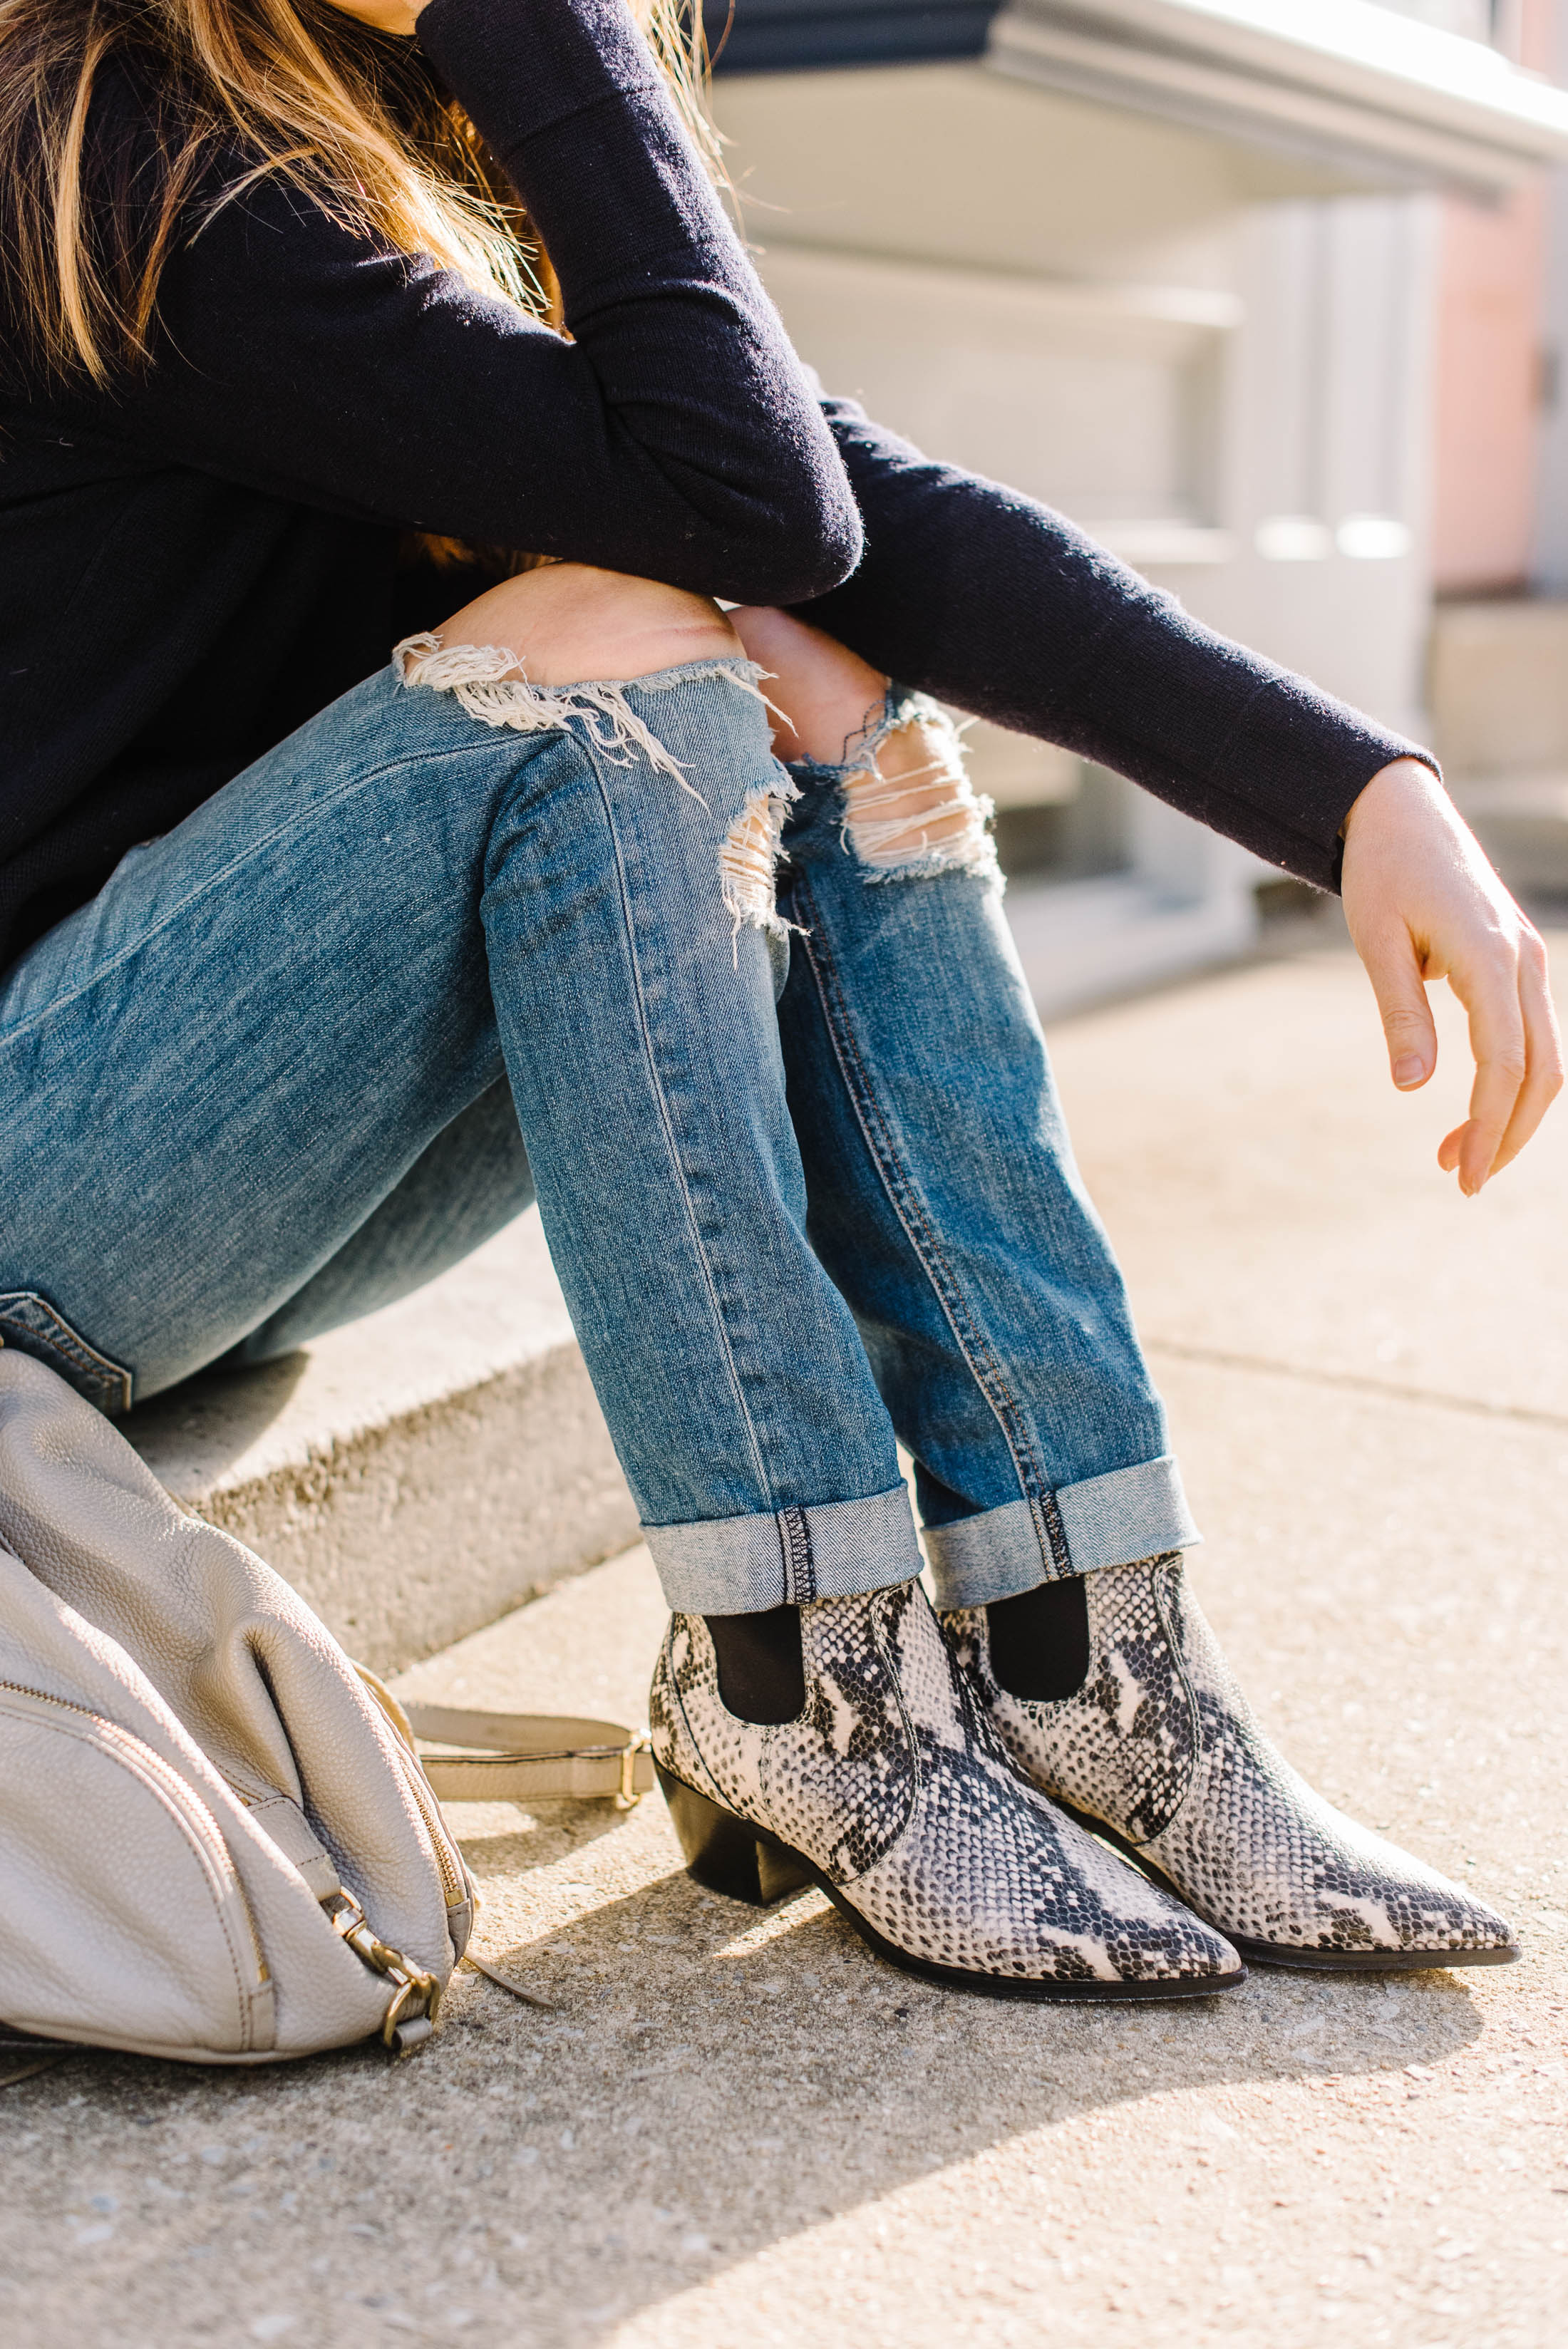 Western booties may just be the shoe to take us into Spring & rock in the Summer —wear 'em with mom jeans, boyfriend jeans & non-skinny denim...yes!